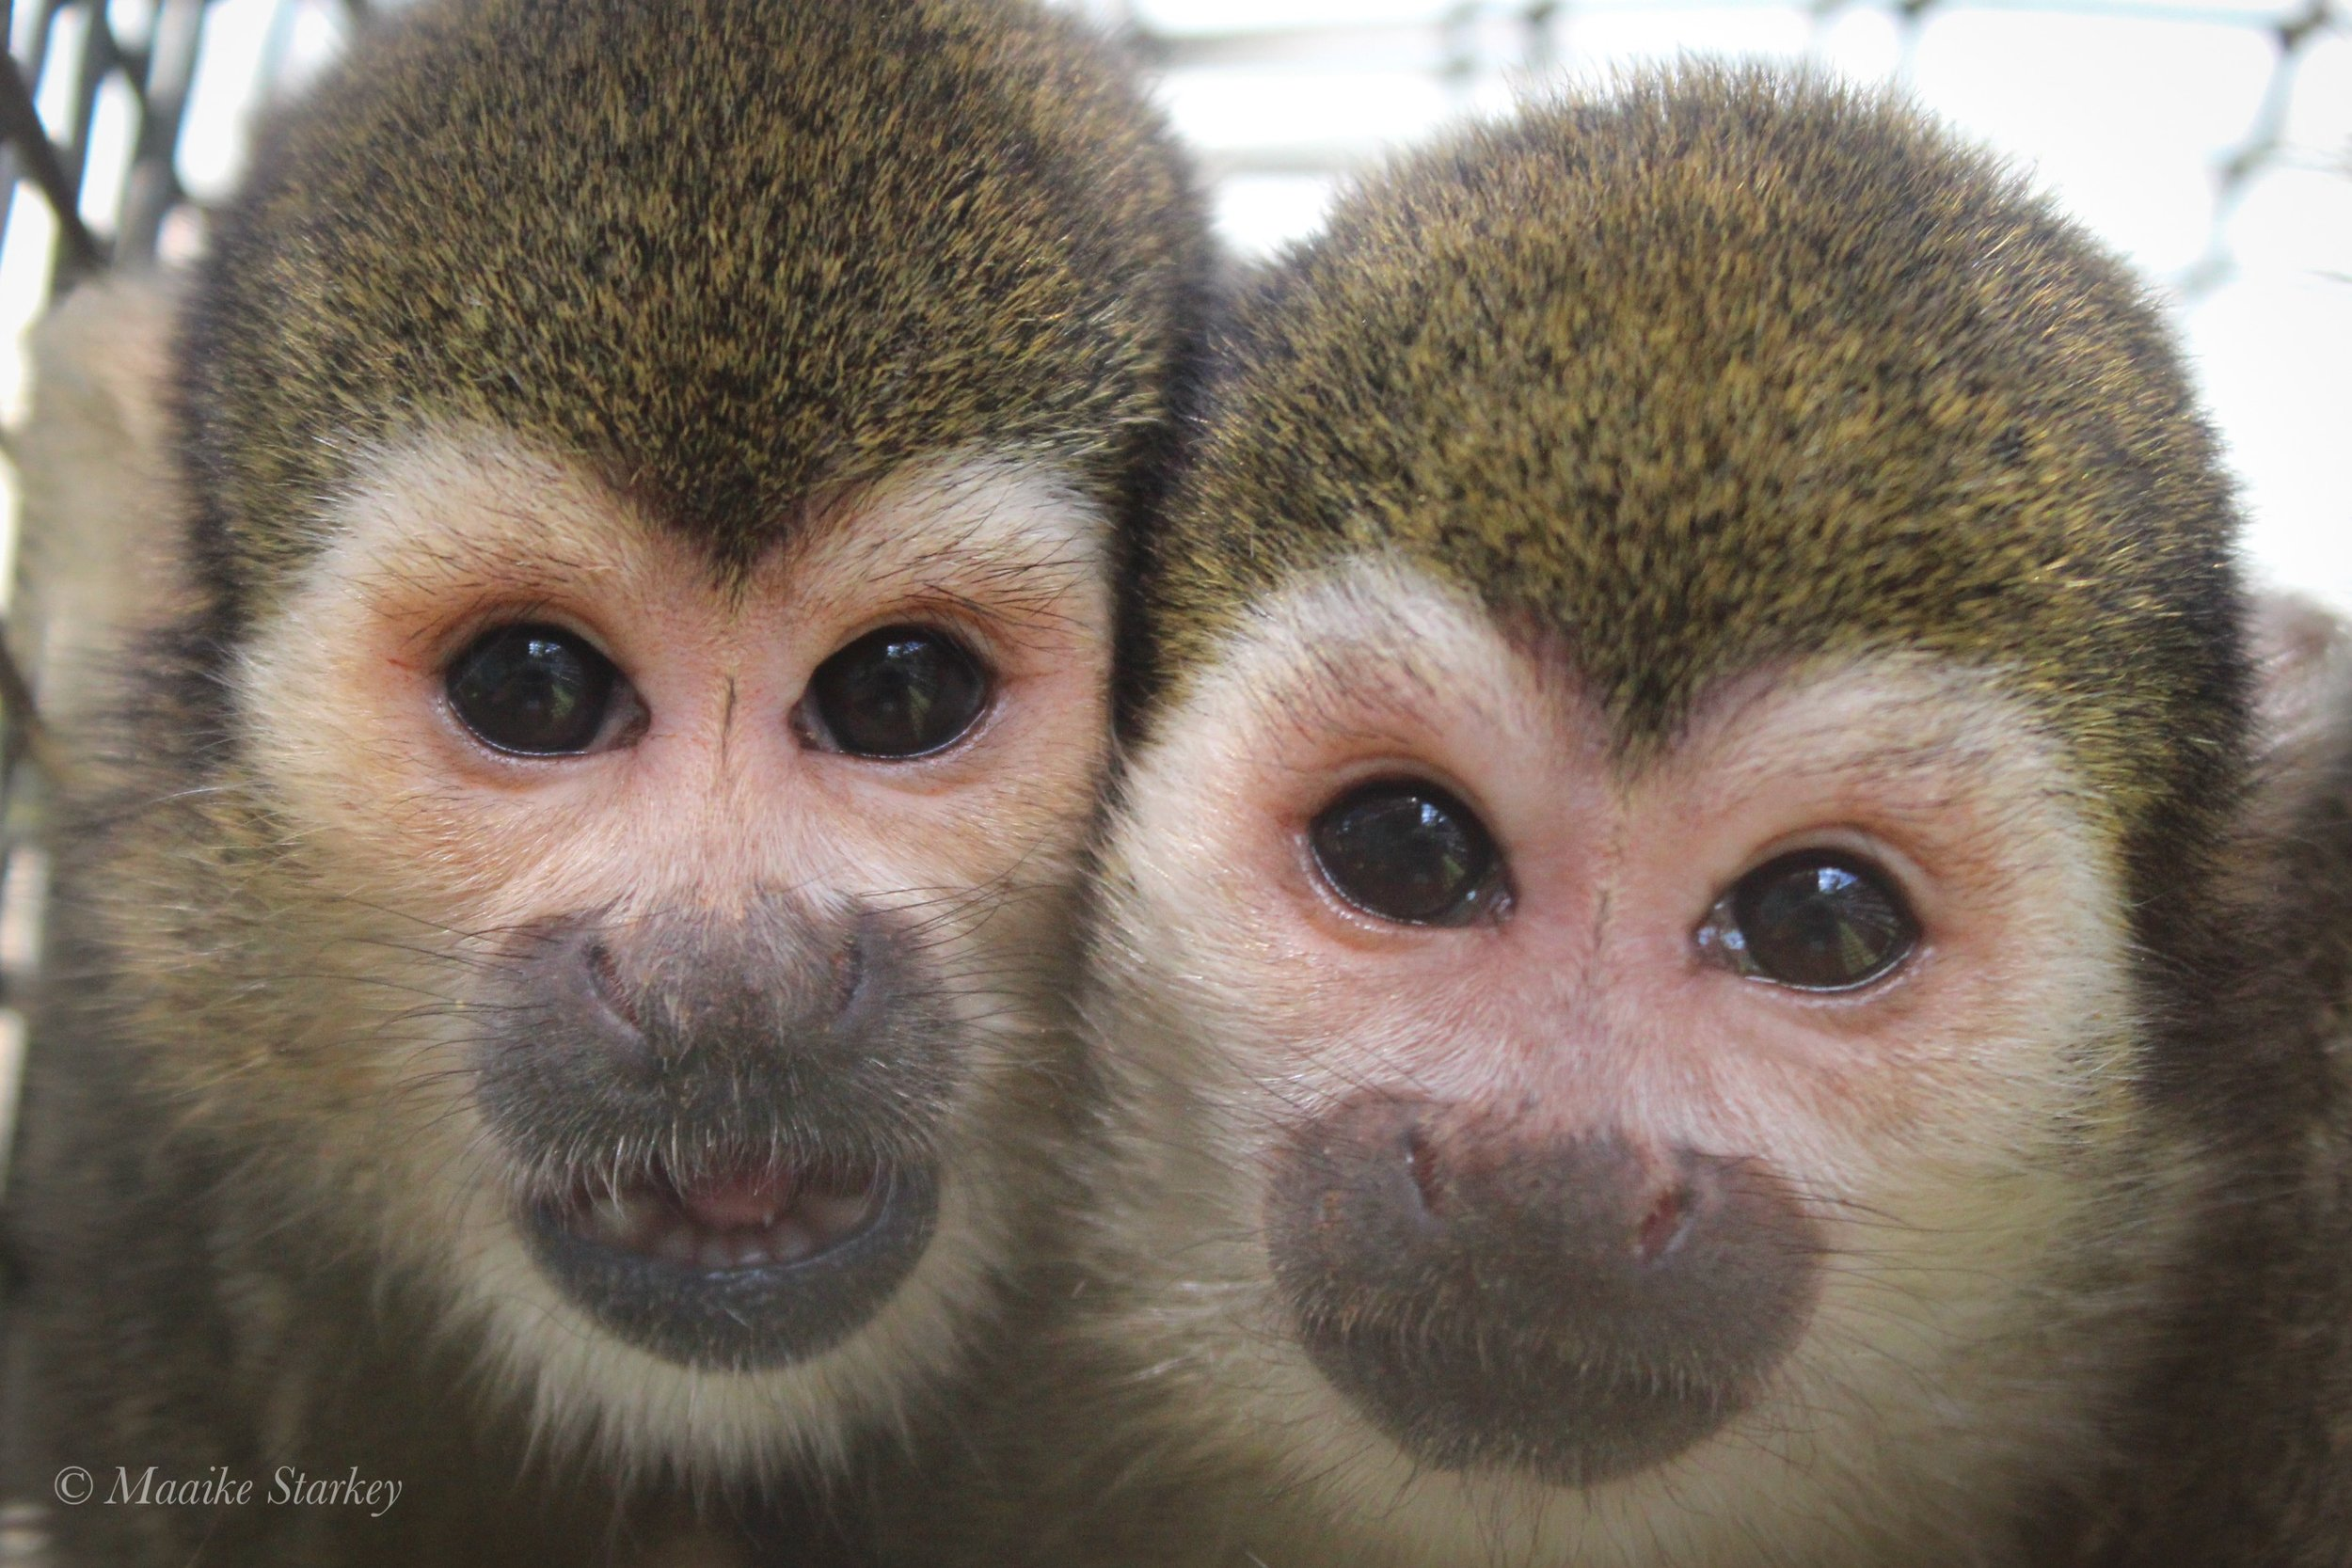 What are squirrel monkeys like? - Although small at about 1 to 2 lbs, they have big personalities, are curious about everything, have lots of smarts, and are super social with each other.